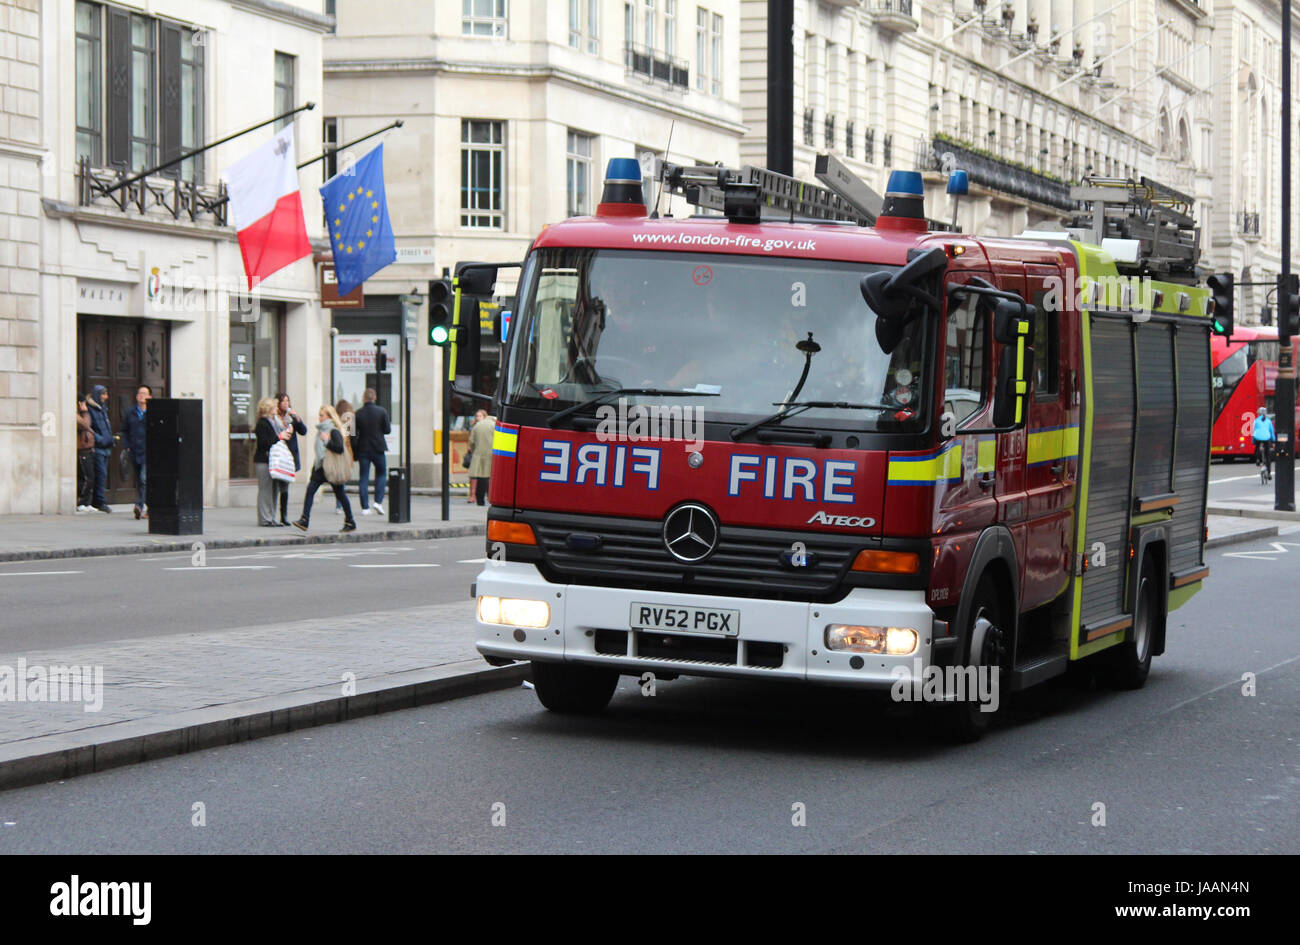 A London Fire Brigade emergency vehicle moving along Piccadilly, central London, UK, in November, 2014. - Stock Image